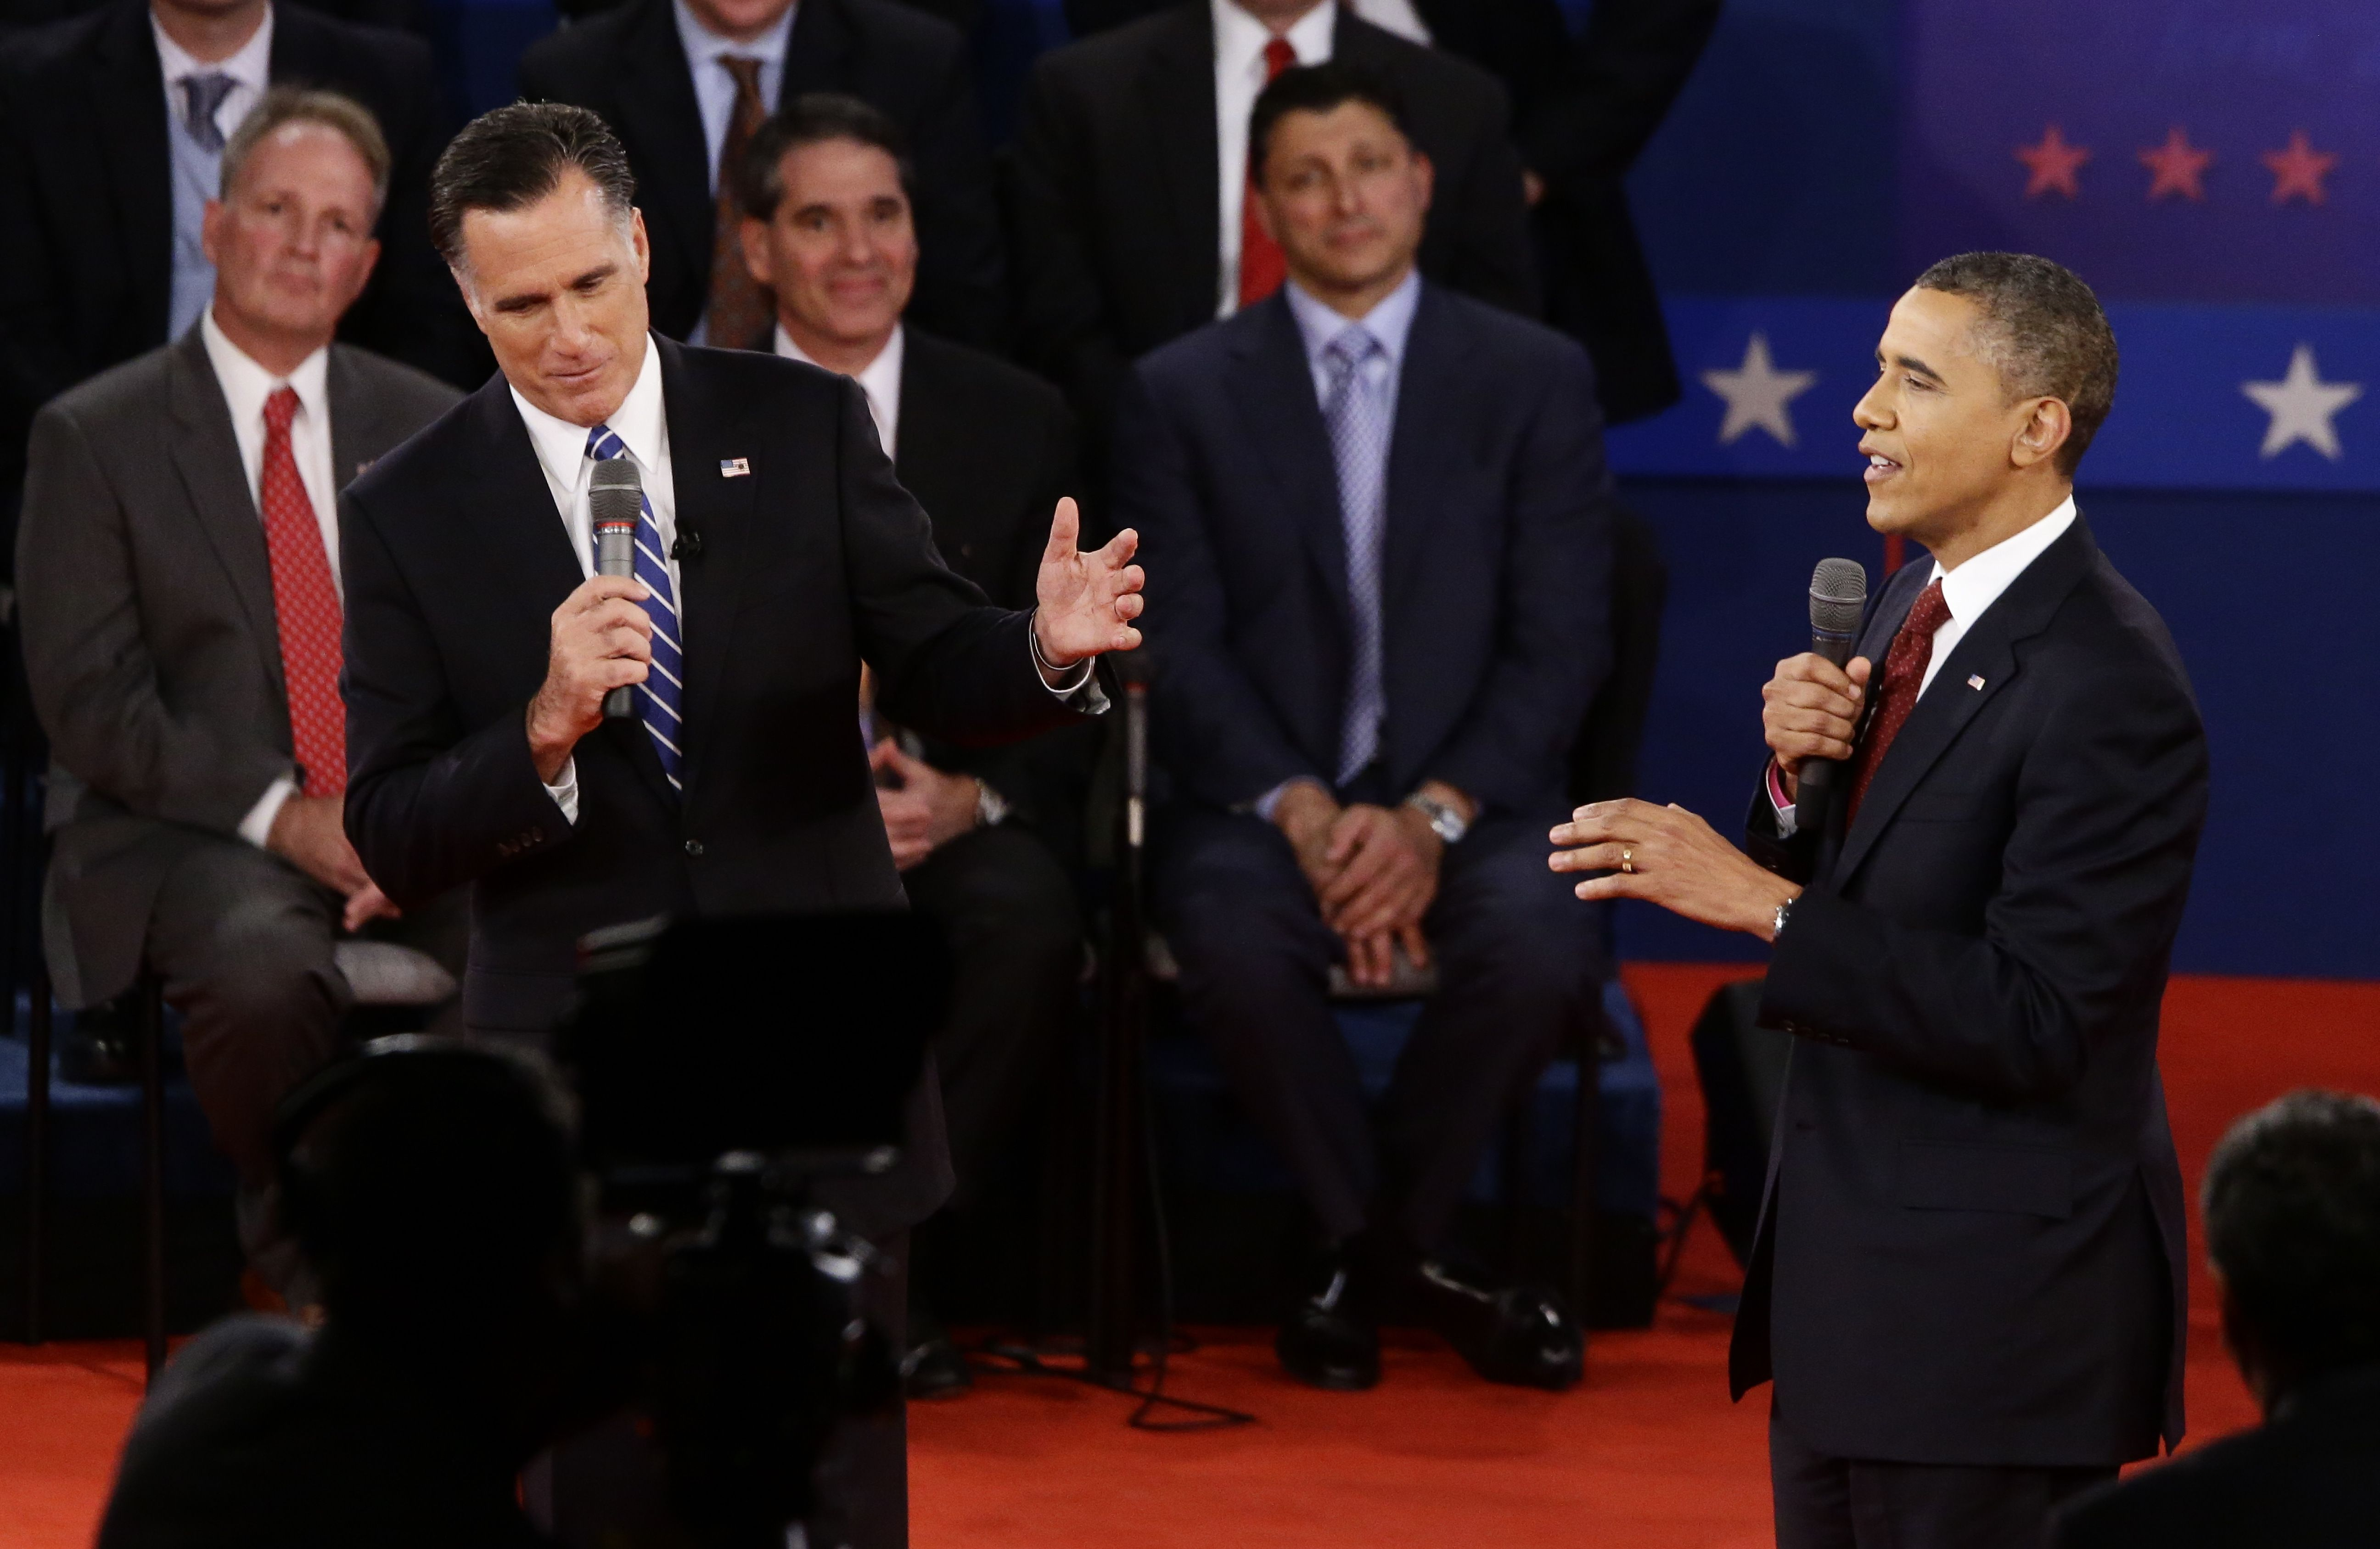 Obama's Debate Recovery